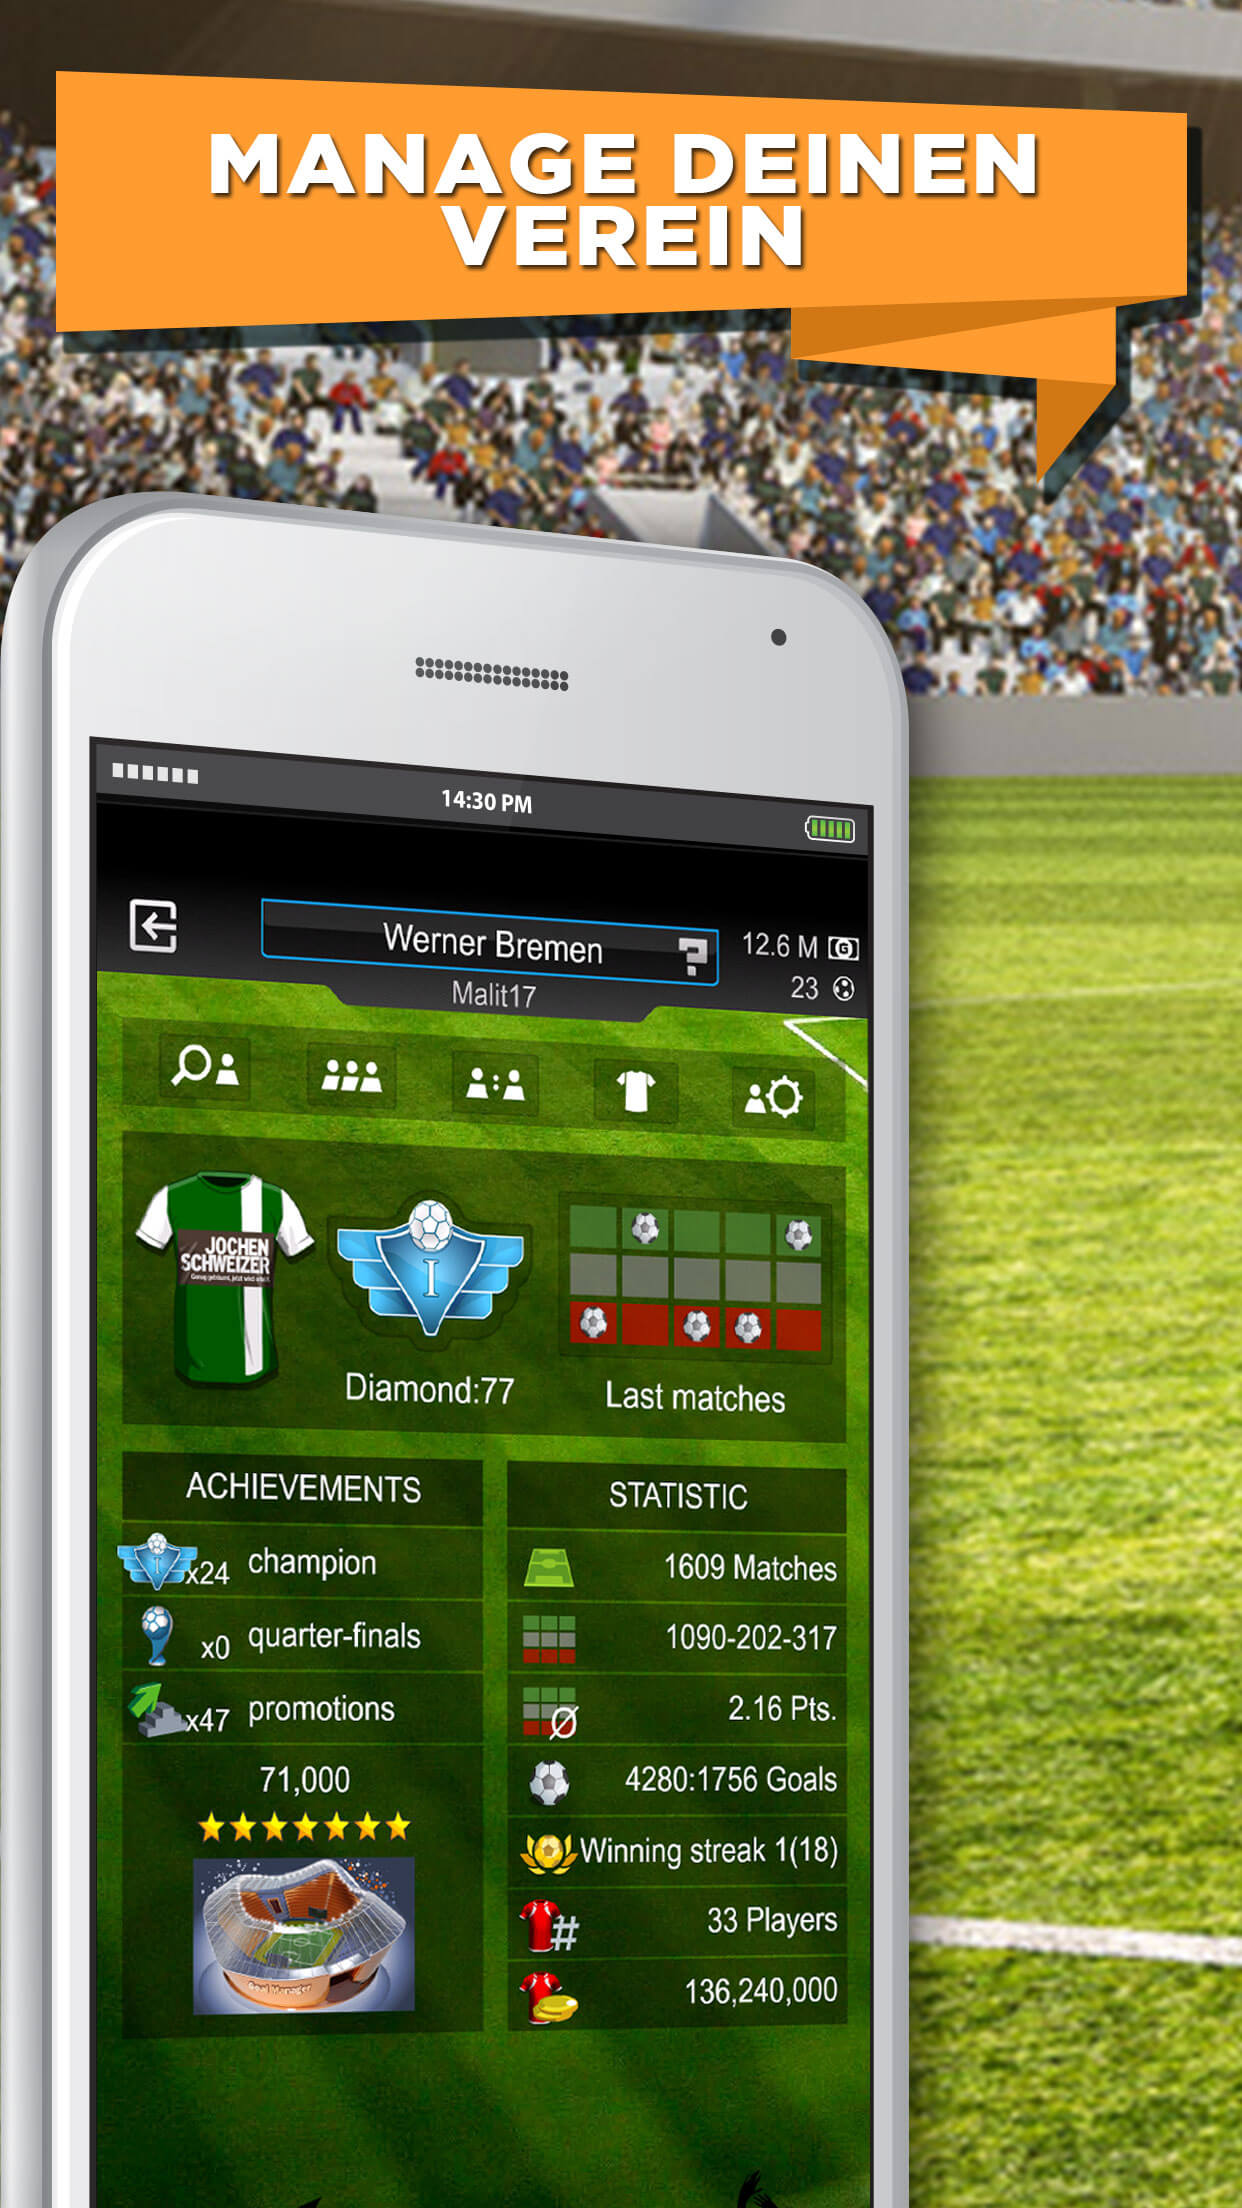 GOAL Fußball Manager 15 iOS